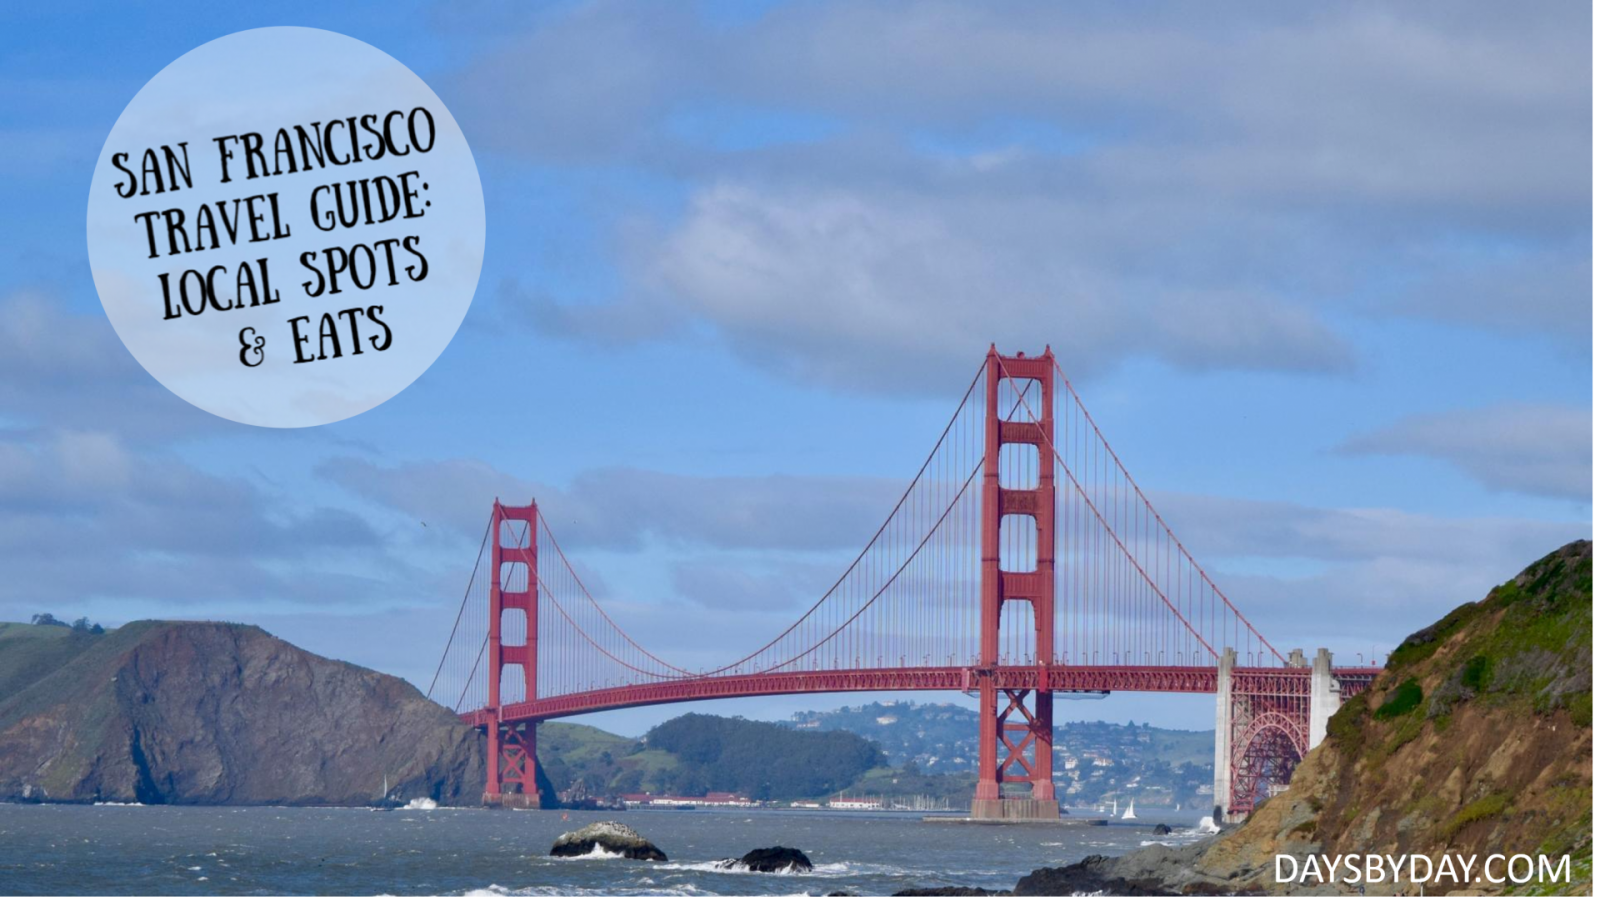 San Francisco Travel Guide: Local Spots & Eats